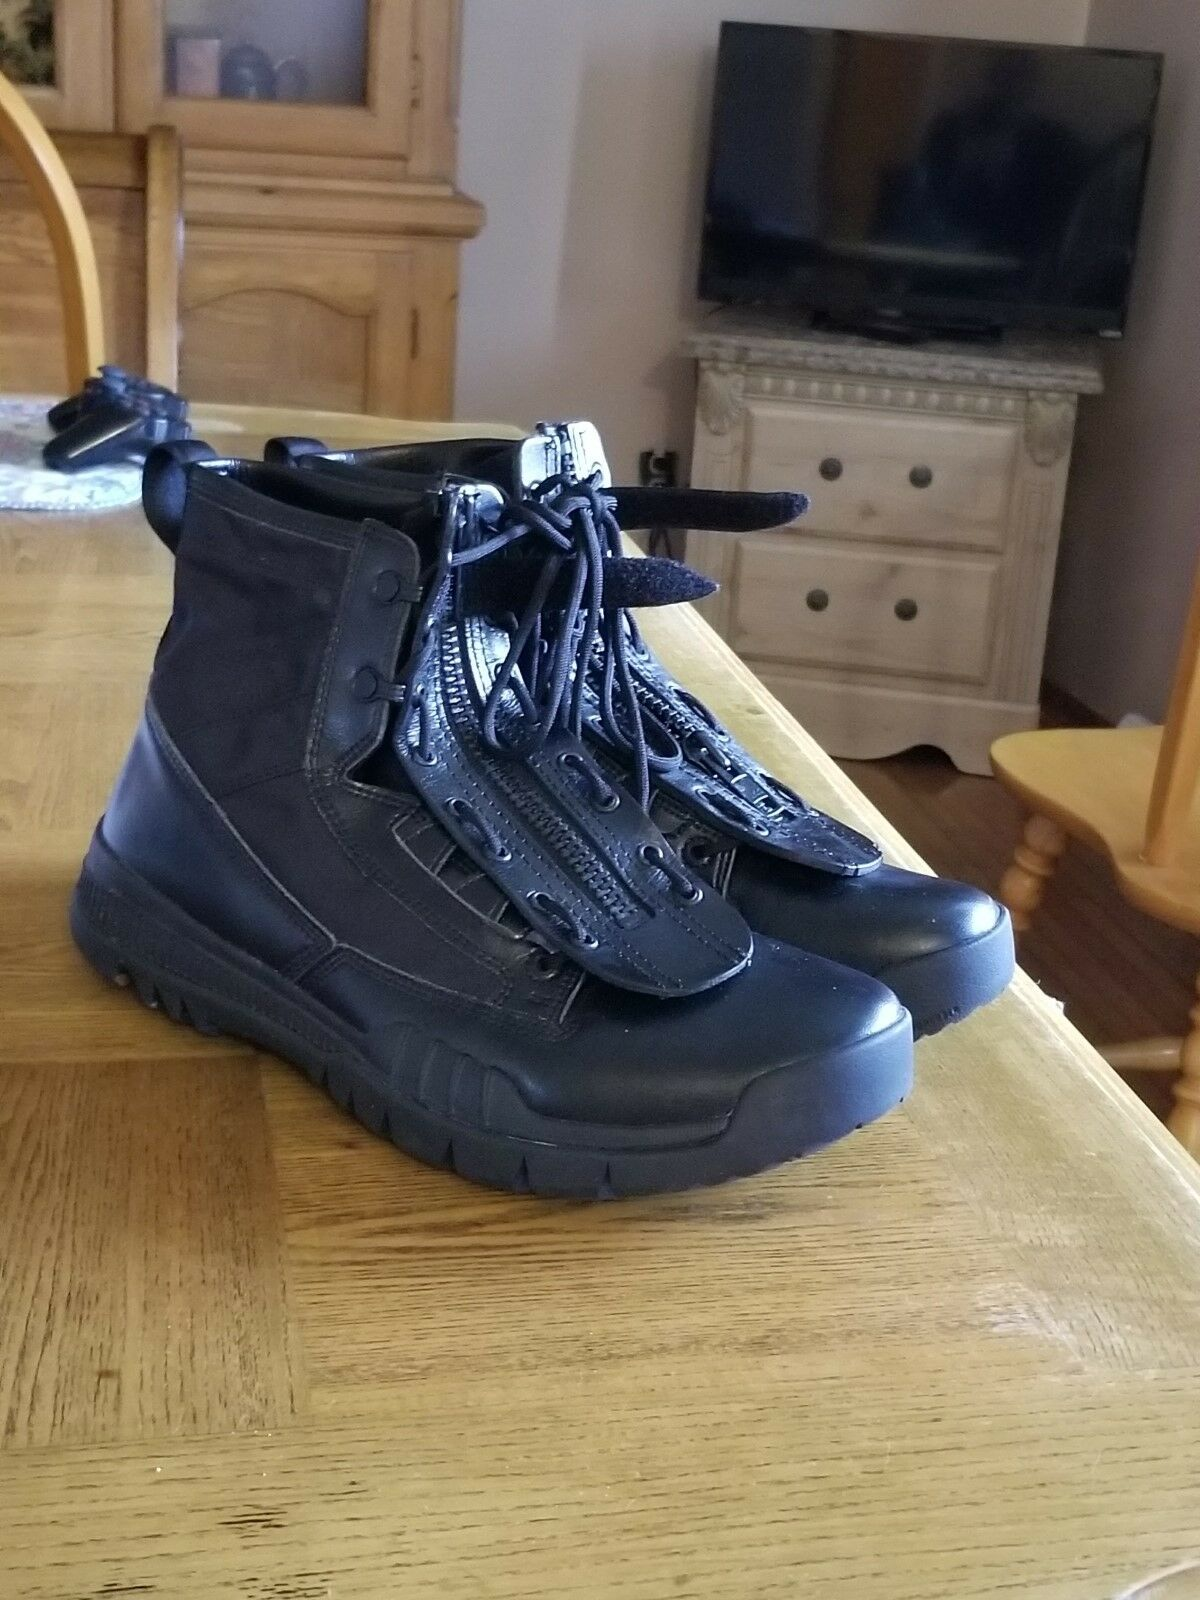 Nike 6in, lightweight boot  Cheap and fashionable